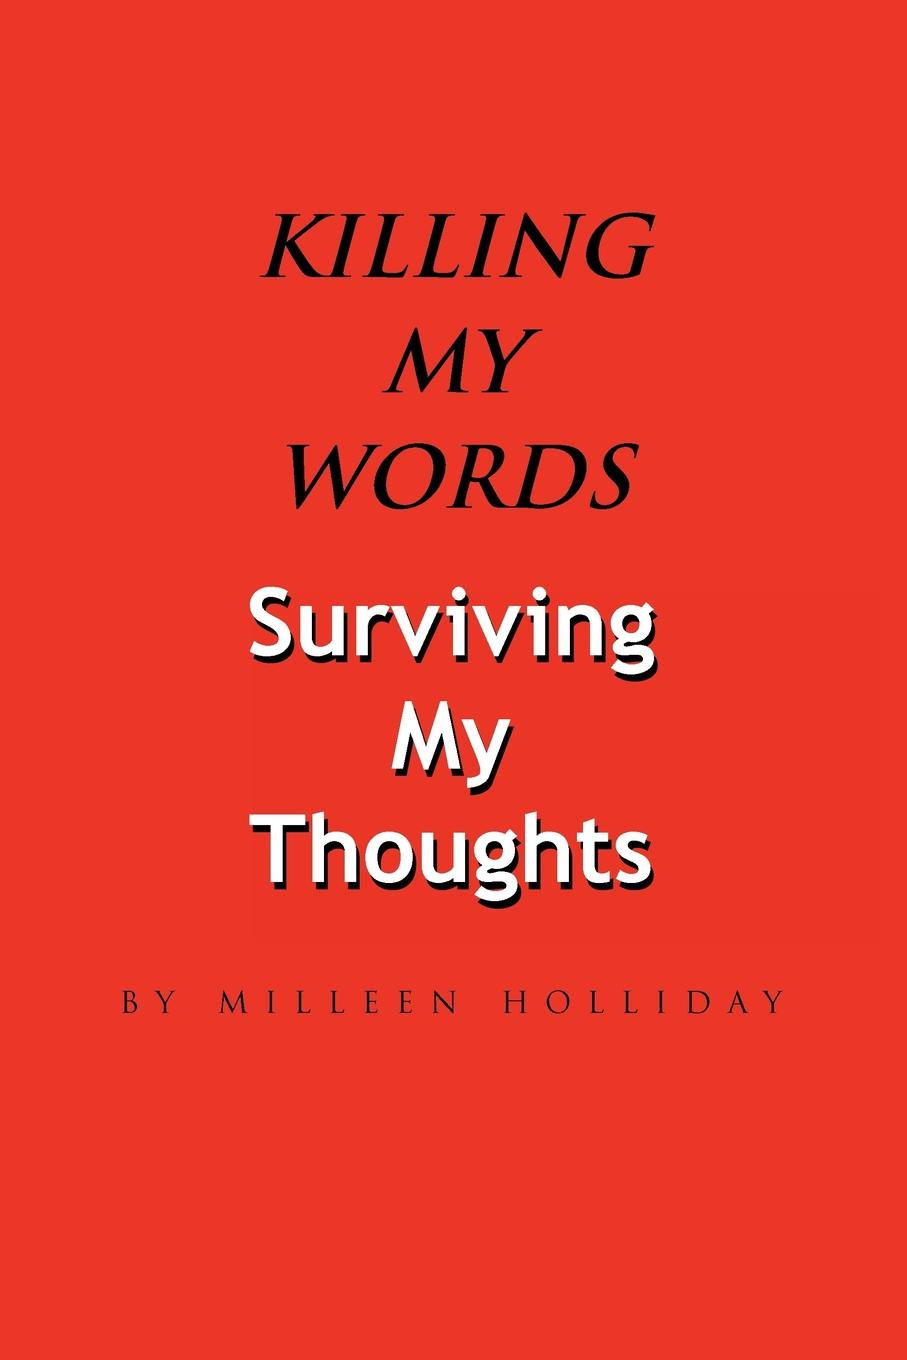 Milleen Holliday Killing My Words, Surviving My Thoughts my first words